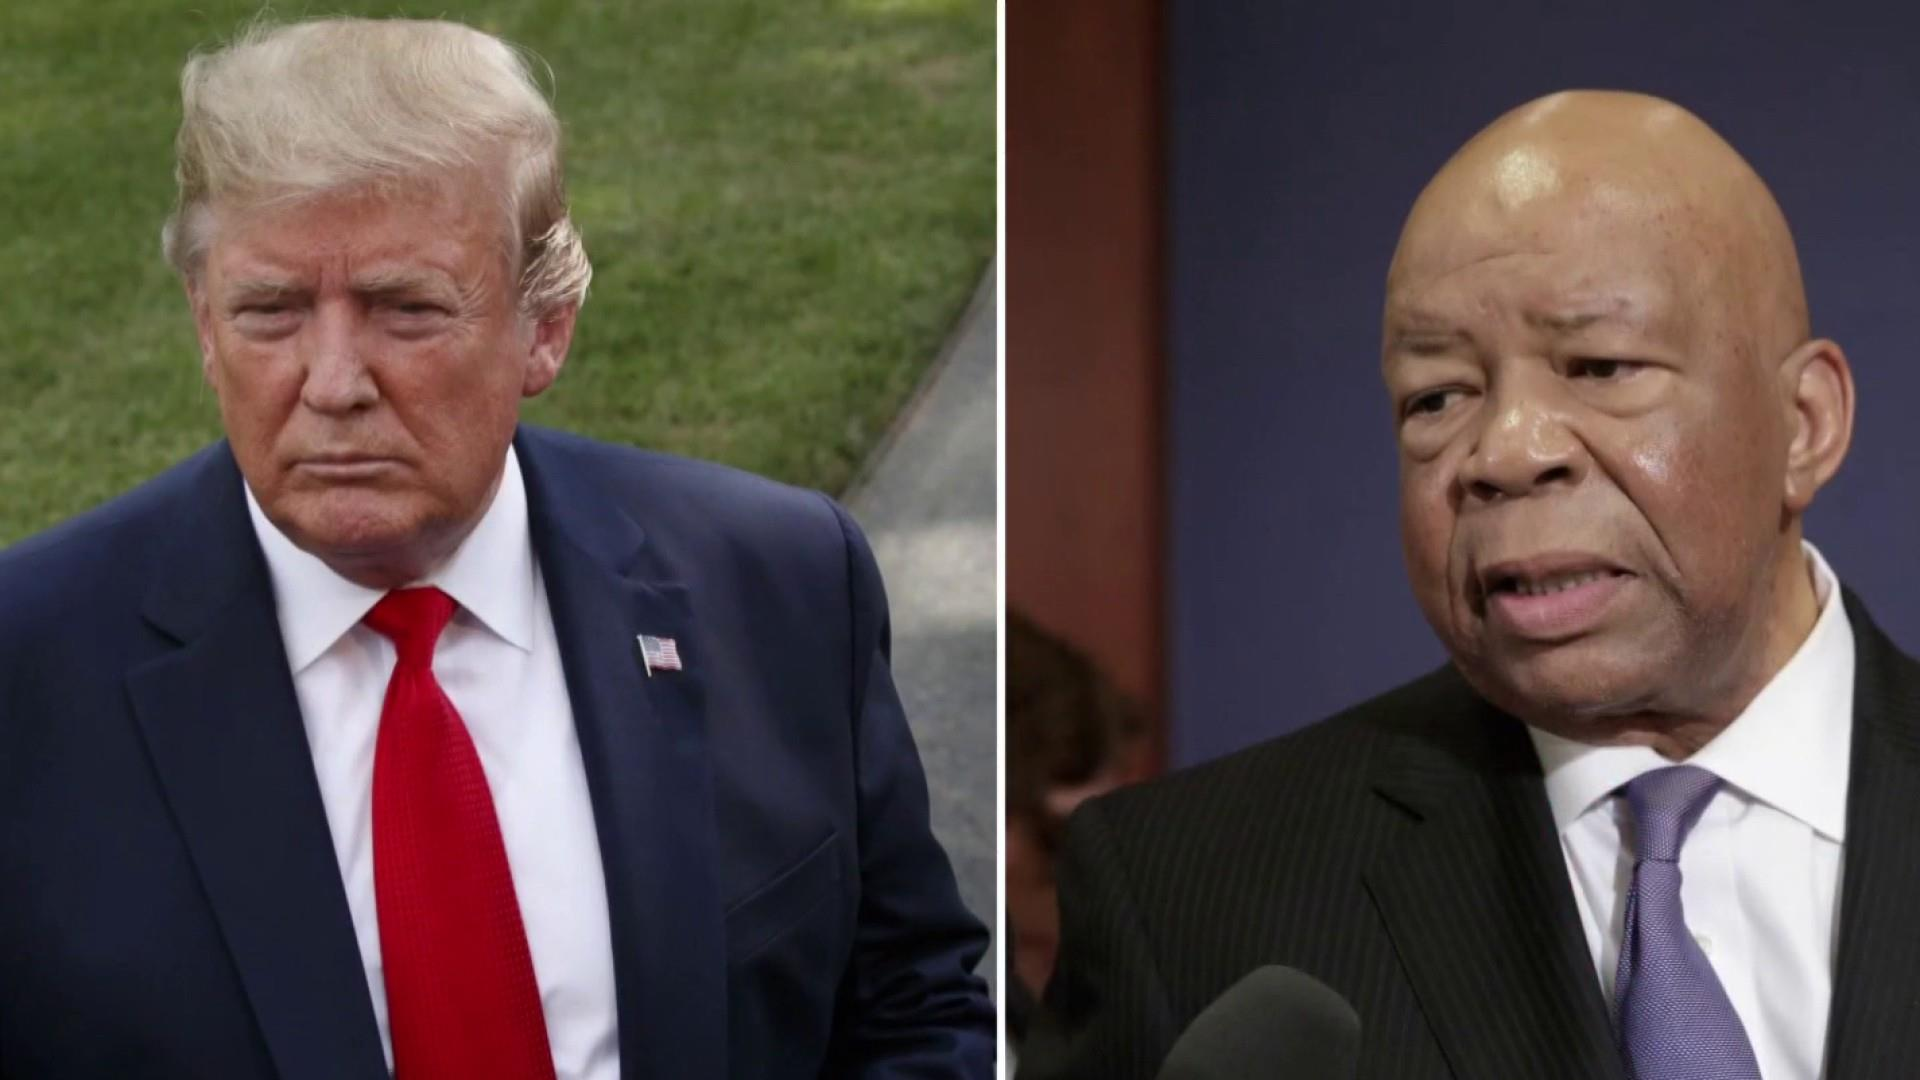 Trump defends racist attacks on Rep. Cummings, City of Baltimore